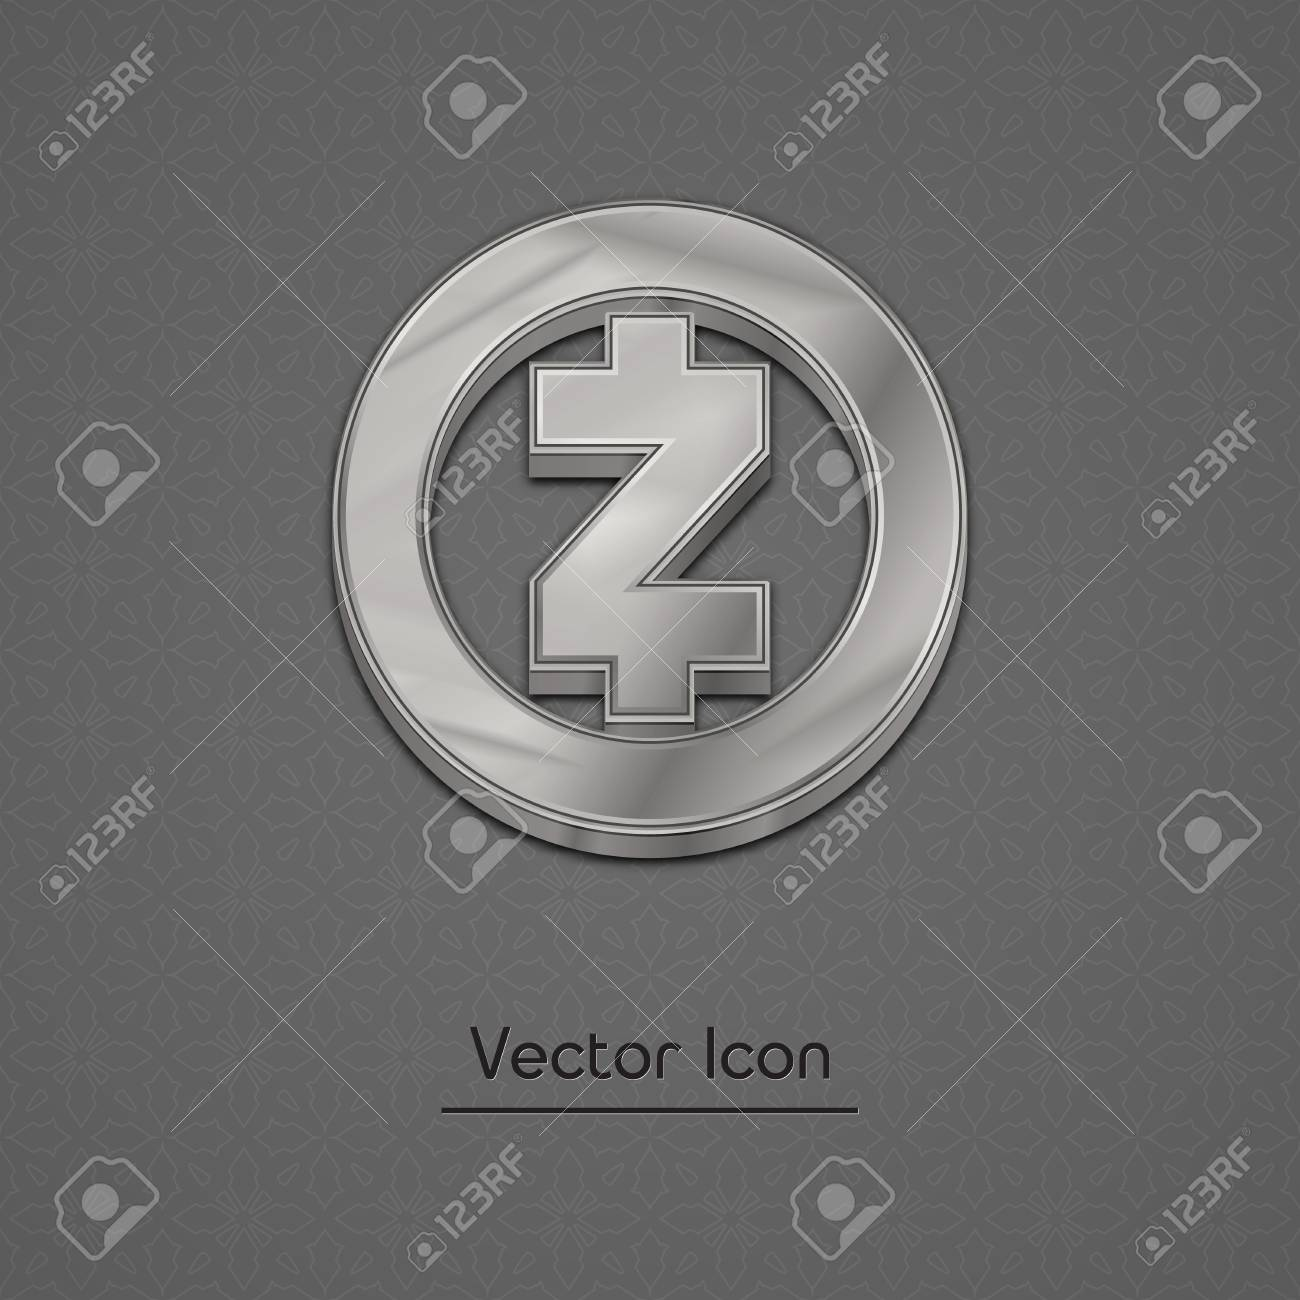 Silver Zcash Coin Symbol Isolated Web Vector Icon Trendy 3d Style